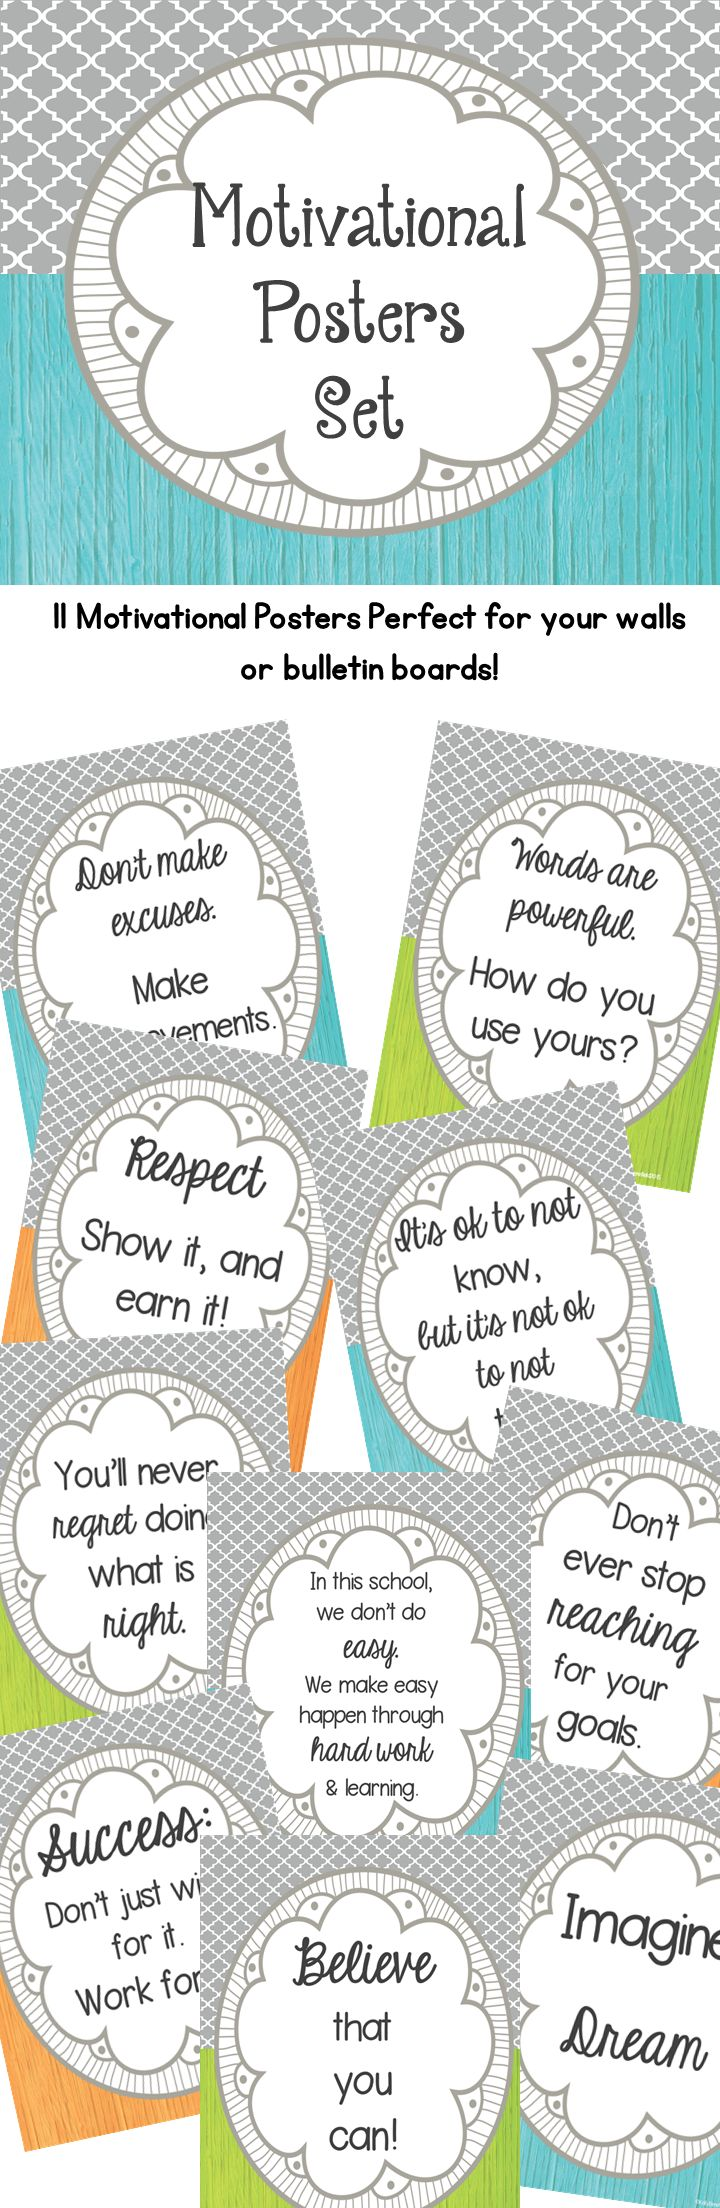 These eleven motivational are bright and colorful which will be the perfect way to decorate your classroom or bulletin boards. Inspire your students, motivate your class, and decorate your room all at the same time! Buy on tpt.